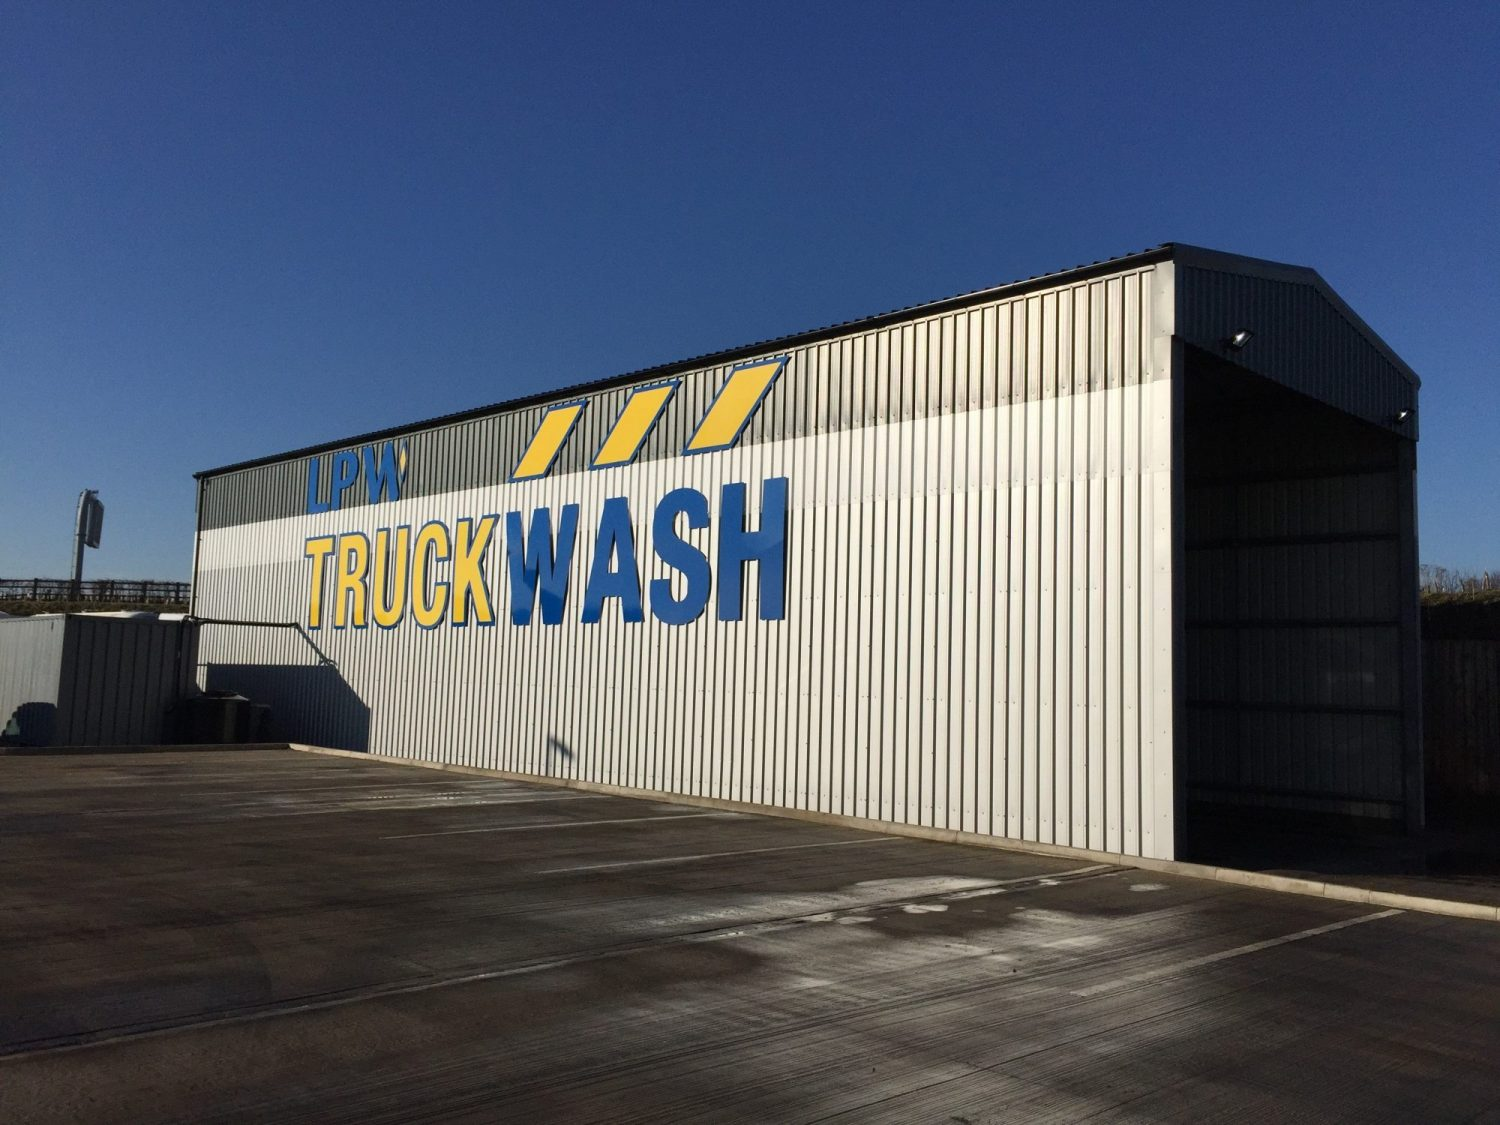 Coneygarth Truck Wash Site